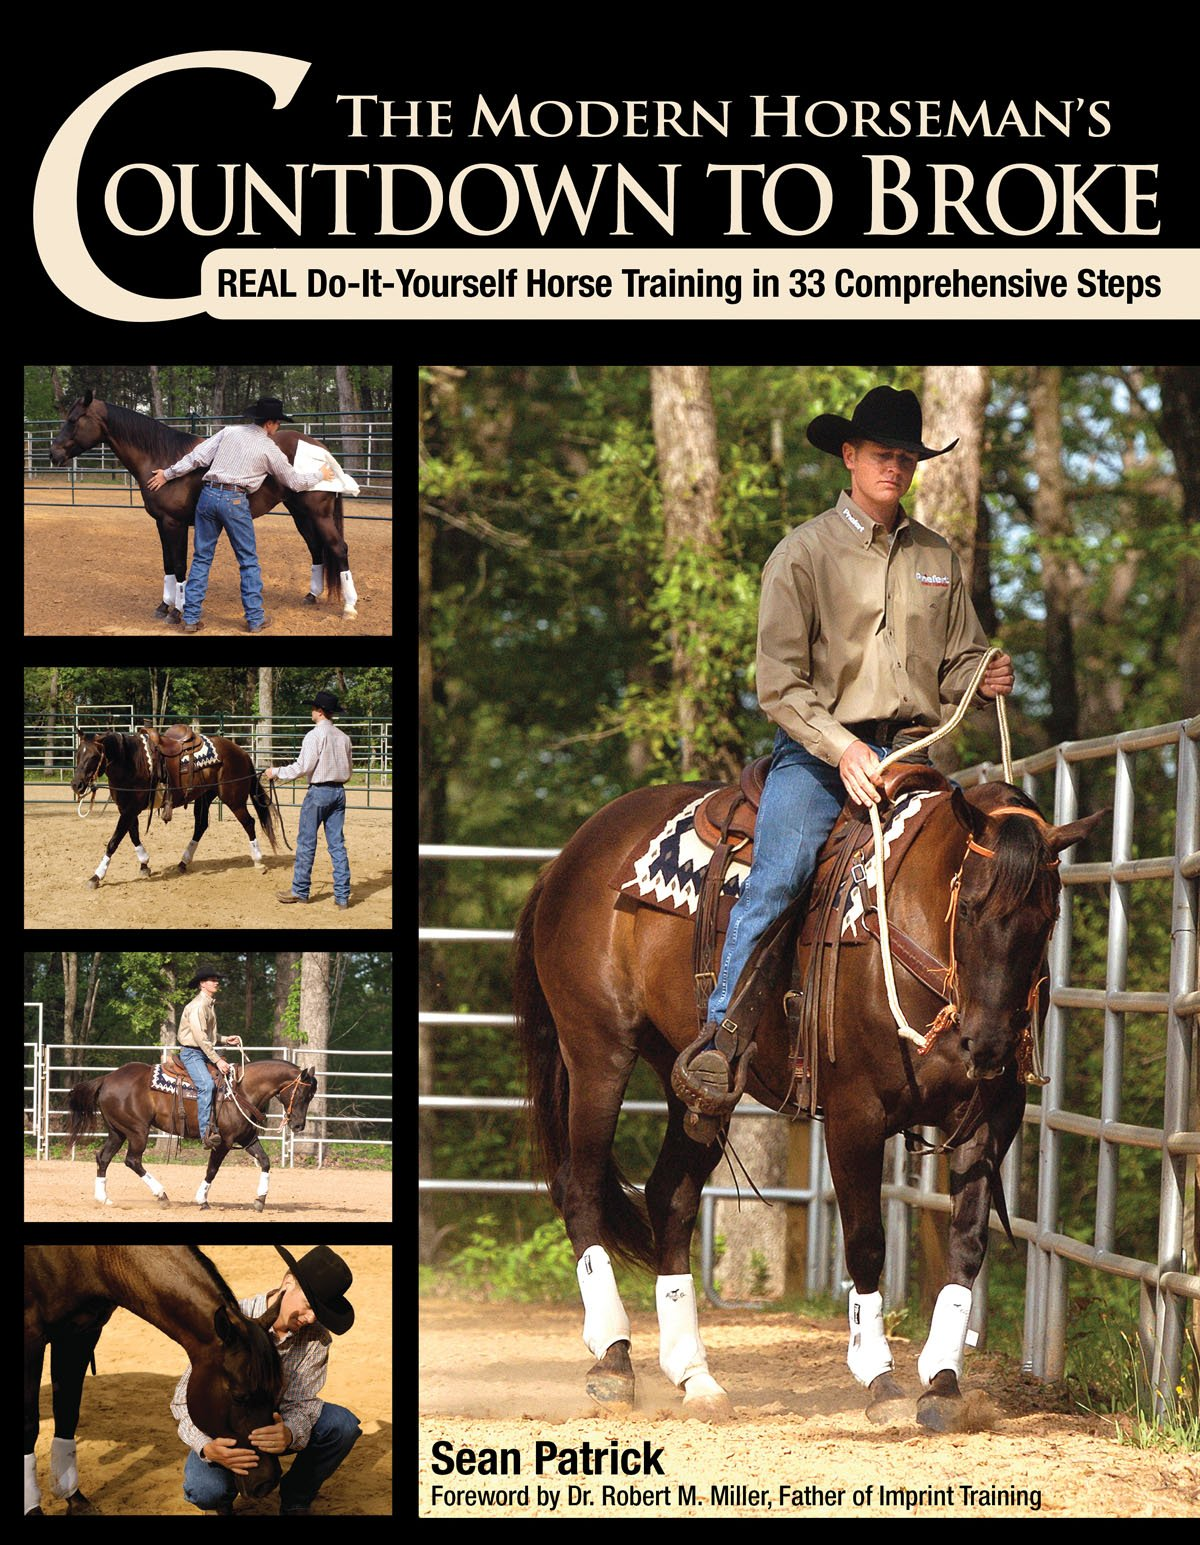 Horse training books amazon the modern horsemans countdown to broke real do it yourself horse training in solutioingenieria Image collections